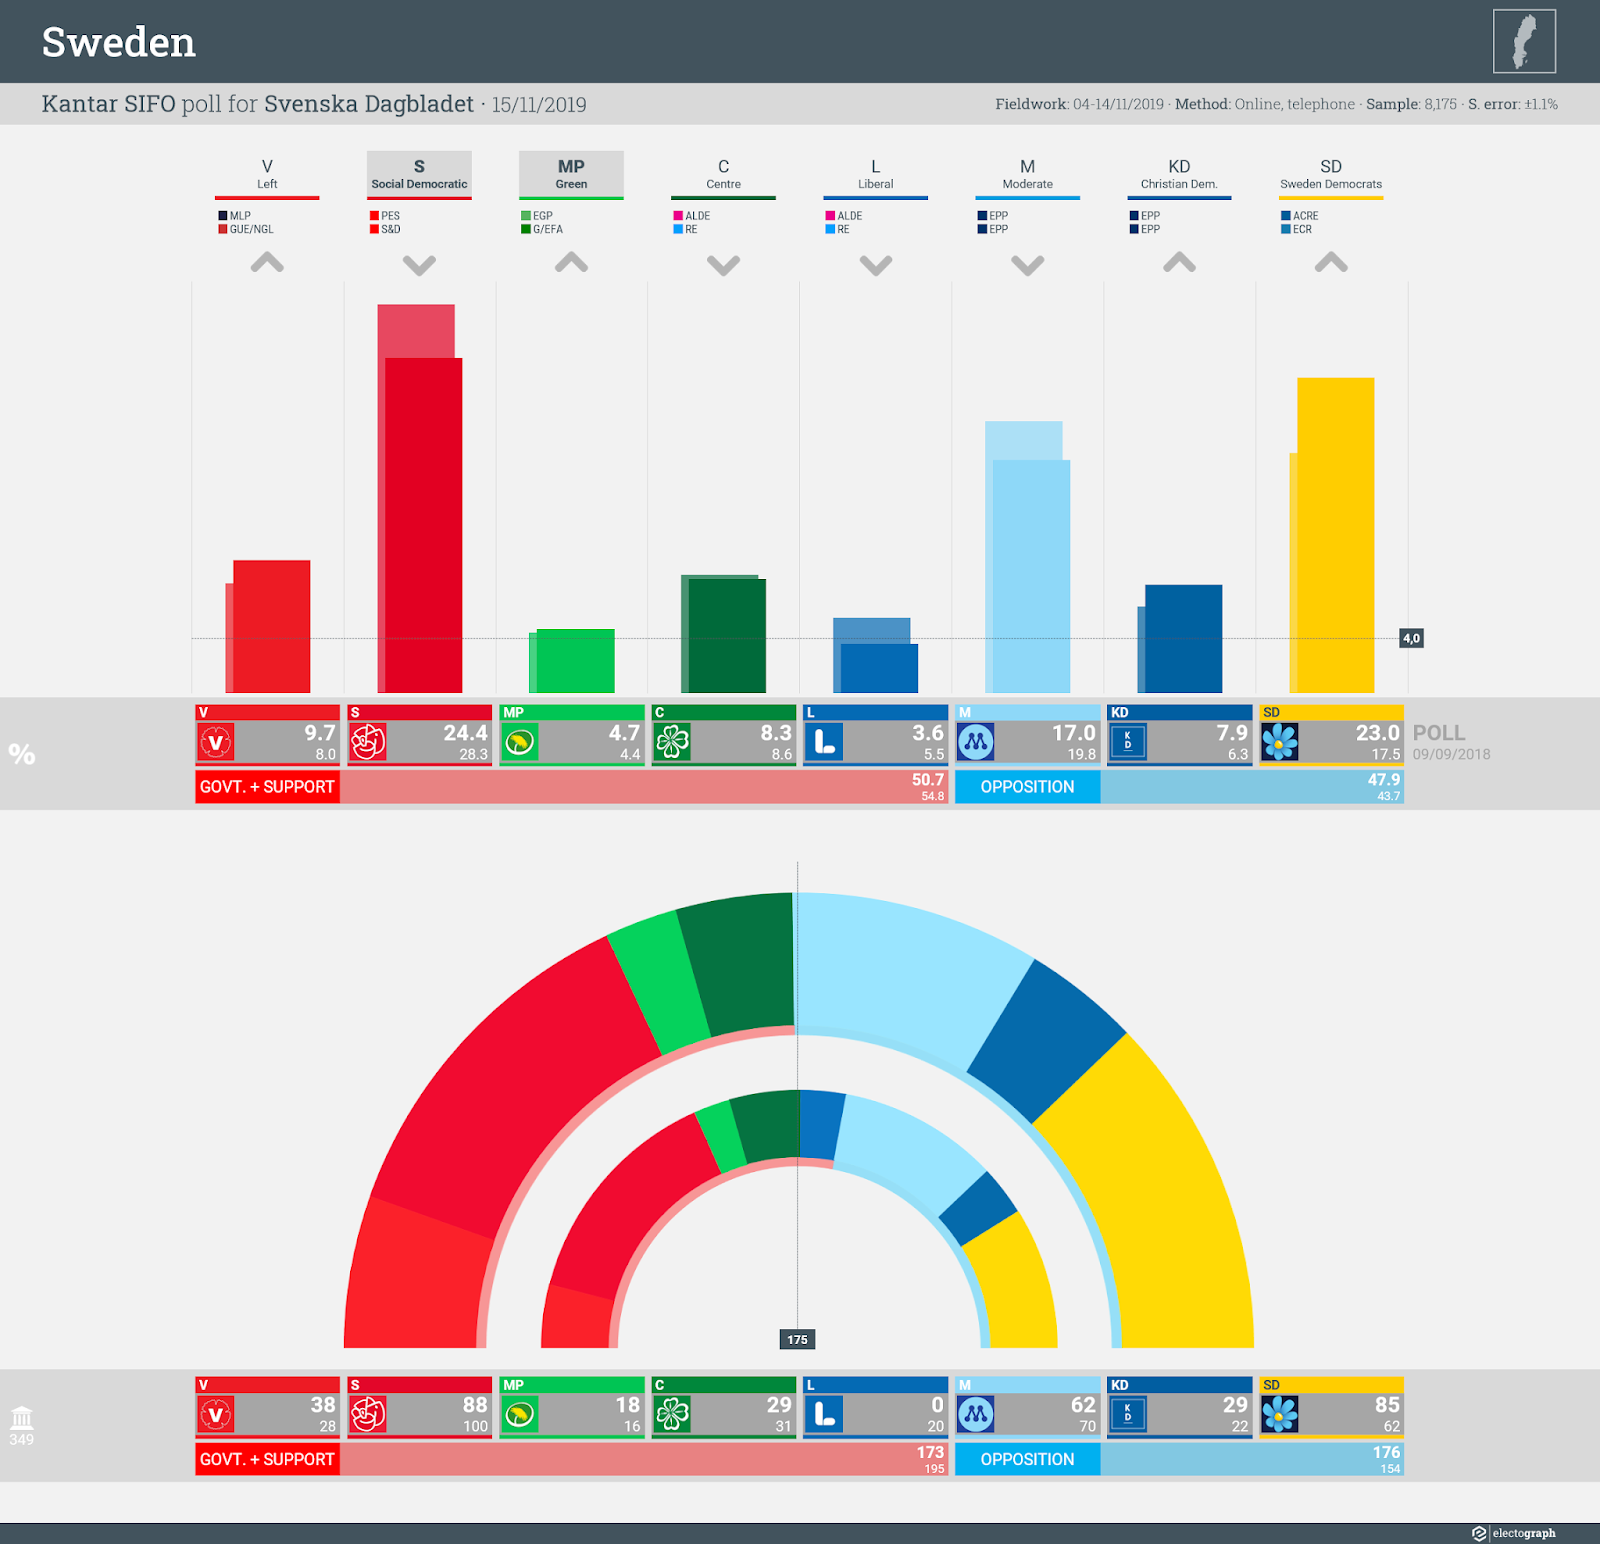 SWEDEN: Kantar SIFO poll chart for Svenska Dagbladet, 15 November 2019